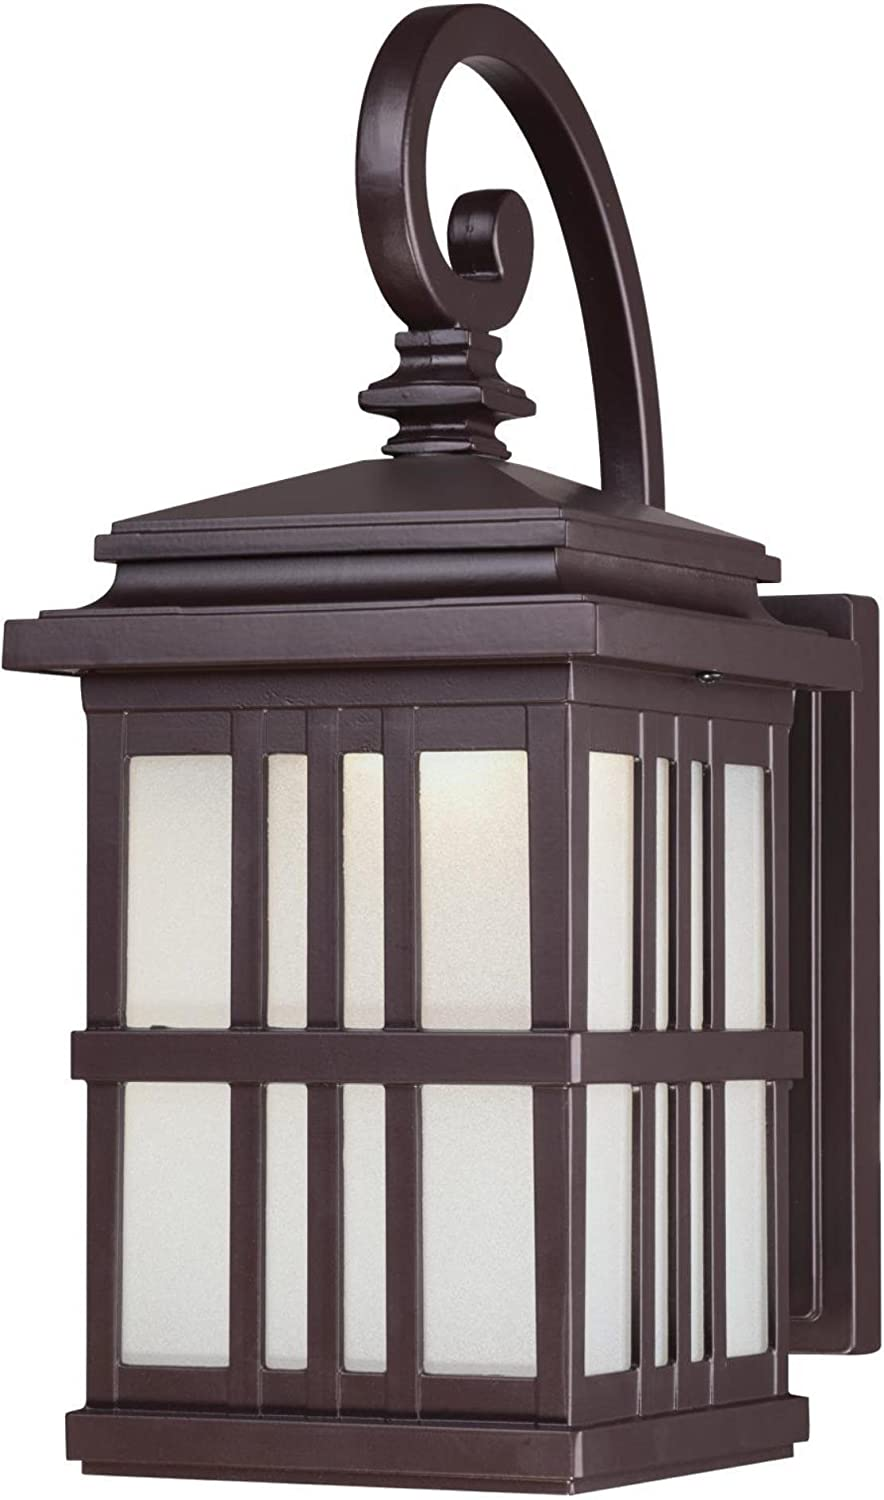 Westinghouse Lighting 6400200 Traditional Time sale One Oil Light B Long Beach Mall Rubbed